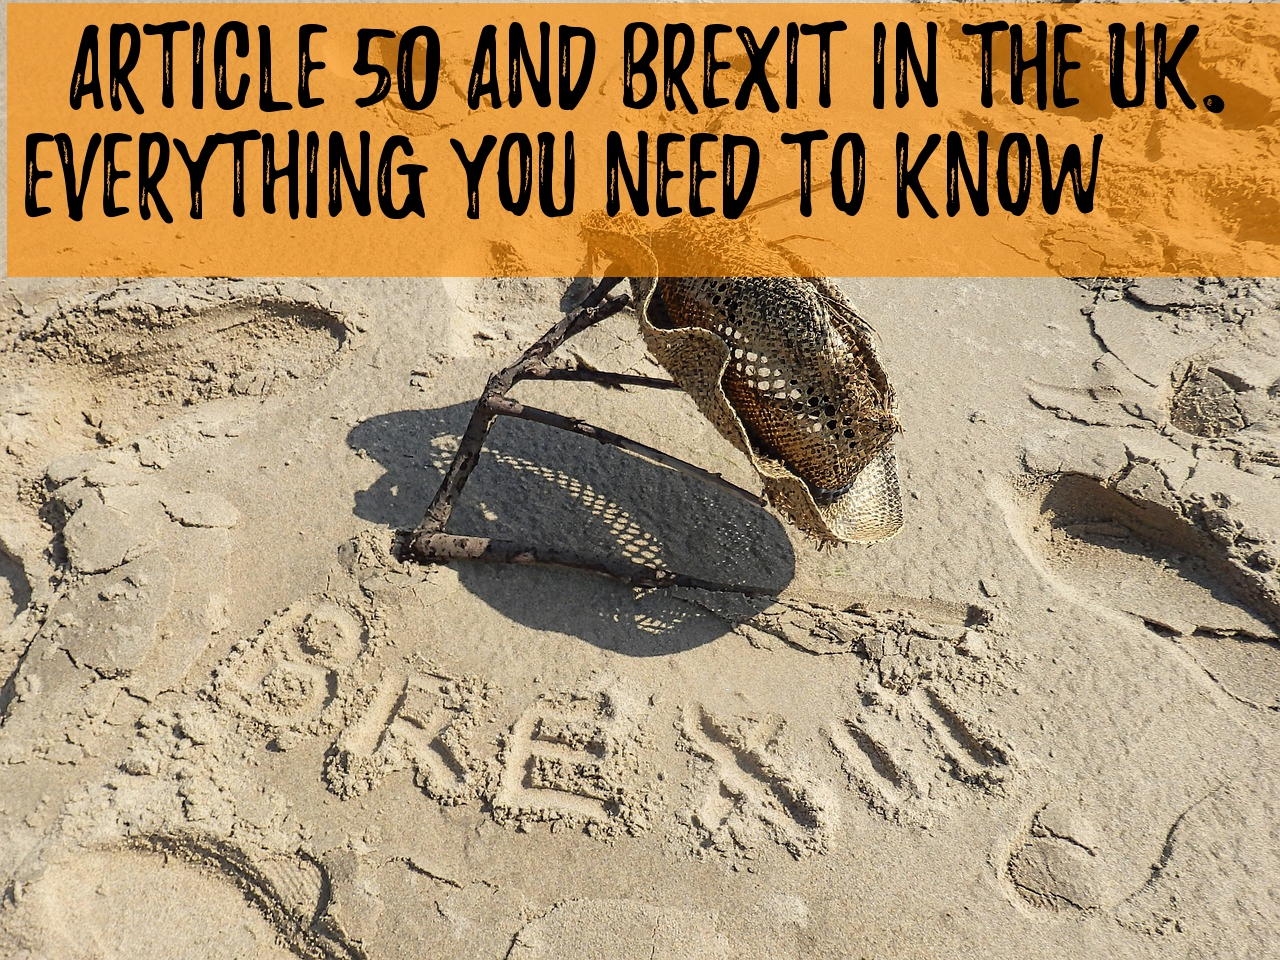 Article 50; Brexit; Article 50 and Brexit; Brexit in the UK; Everything you need to know about Brexit; Everything you need to know about Article 50; Everything you need to know about the Referendum in the UK; Everything you need to know about Britain in the EU; EU Referendum; Referendum; British; Britain; British Politics; EU; European Union; the UK's EU Referendum; European politics; British politics; Vote Leave; Vote Remain; Remain; Leave; UK; United Kingdom; politics;